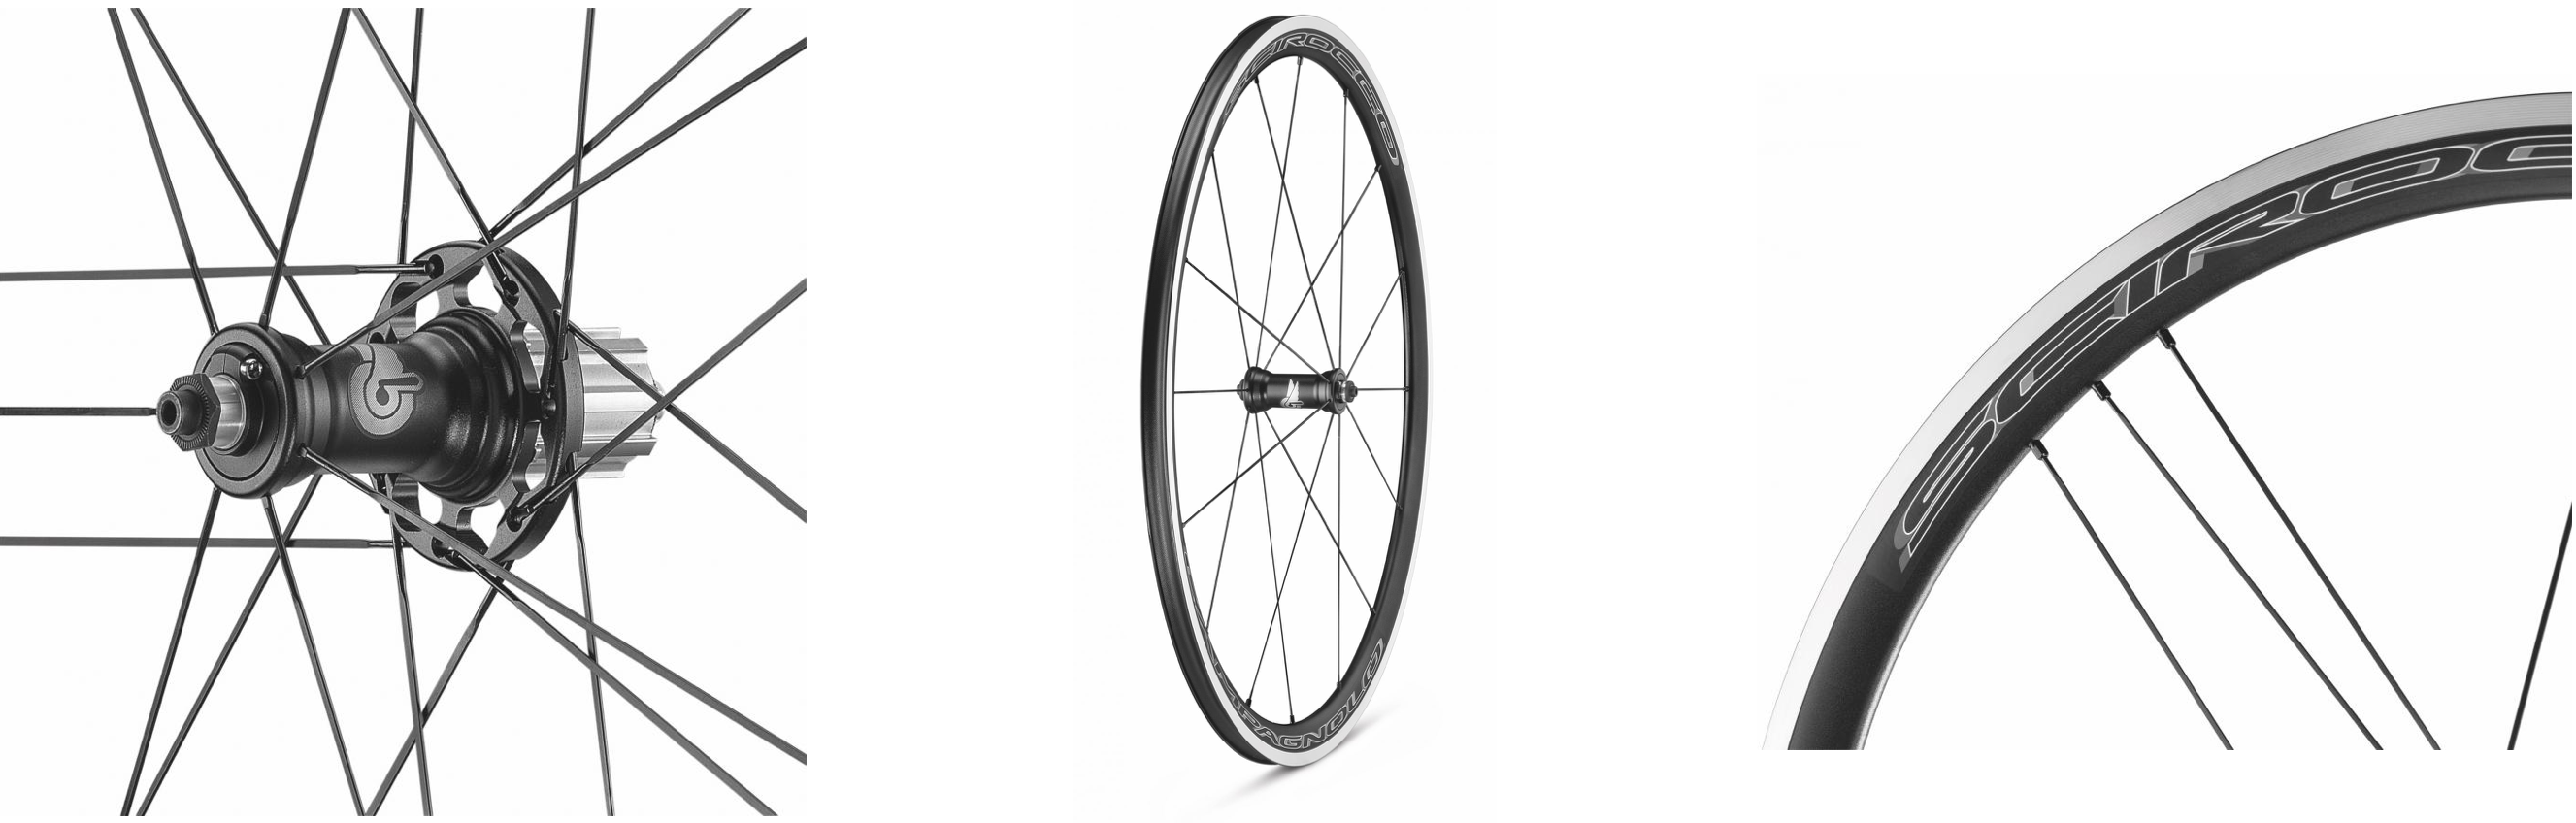 Campagnolo Scirocco, 35mm deep and 17mm wide (internal)